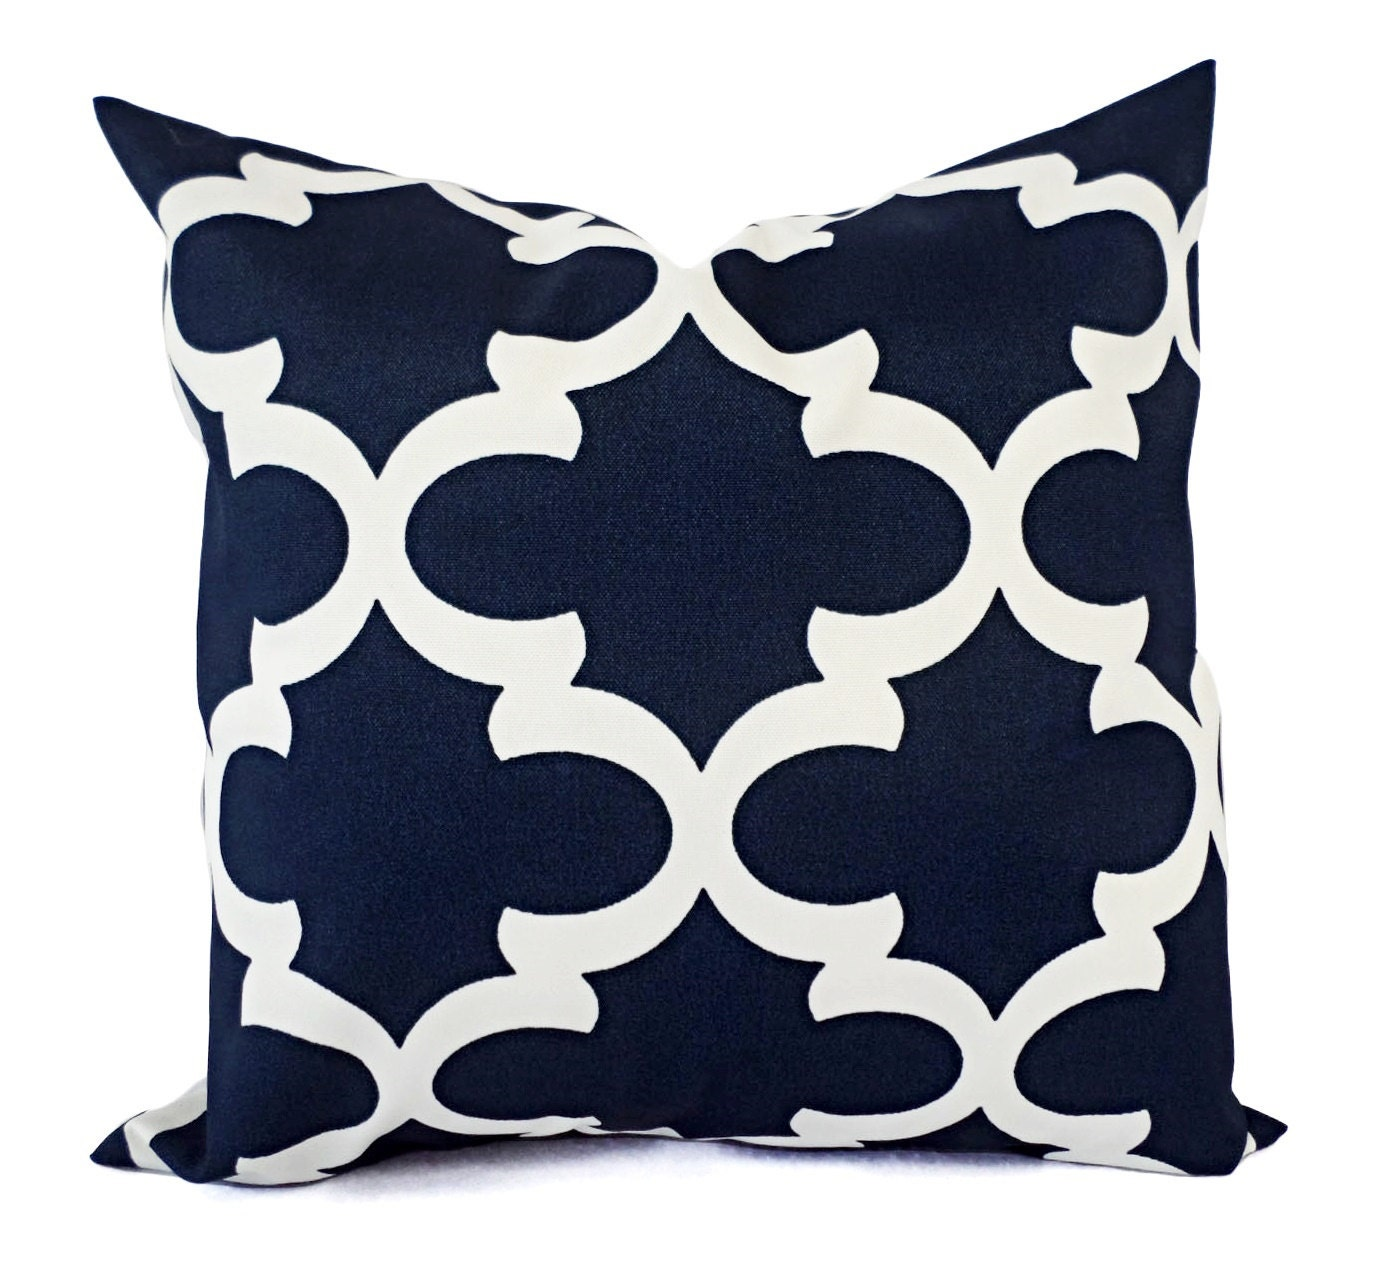 Throw Pillows Navy And White : Two OUTDOOR Pillows Navy White Pillow Cover Navy Throw